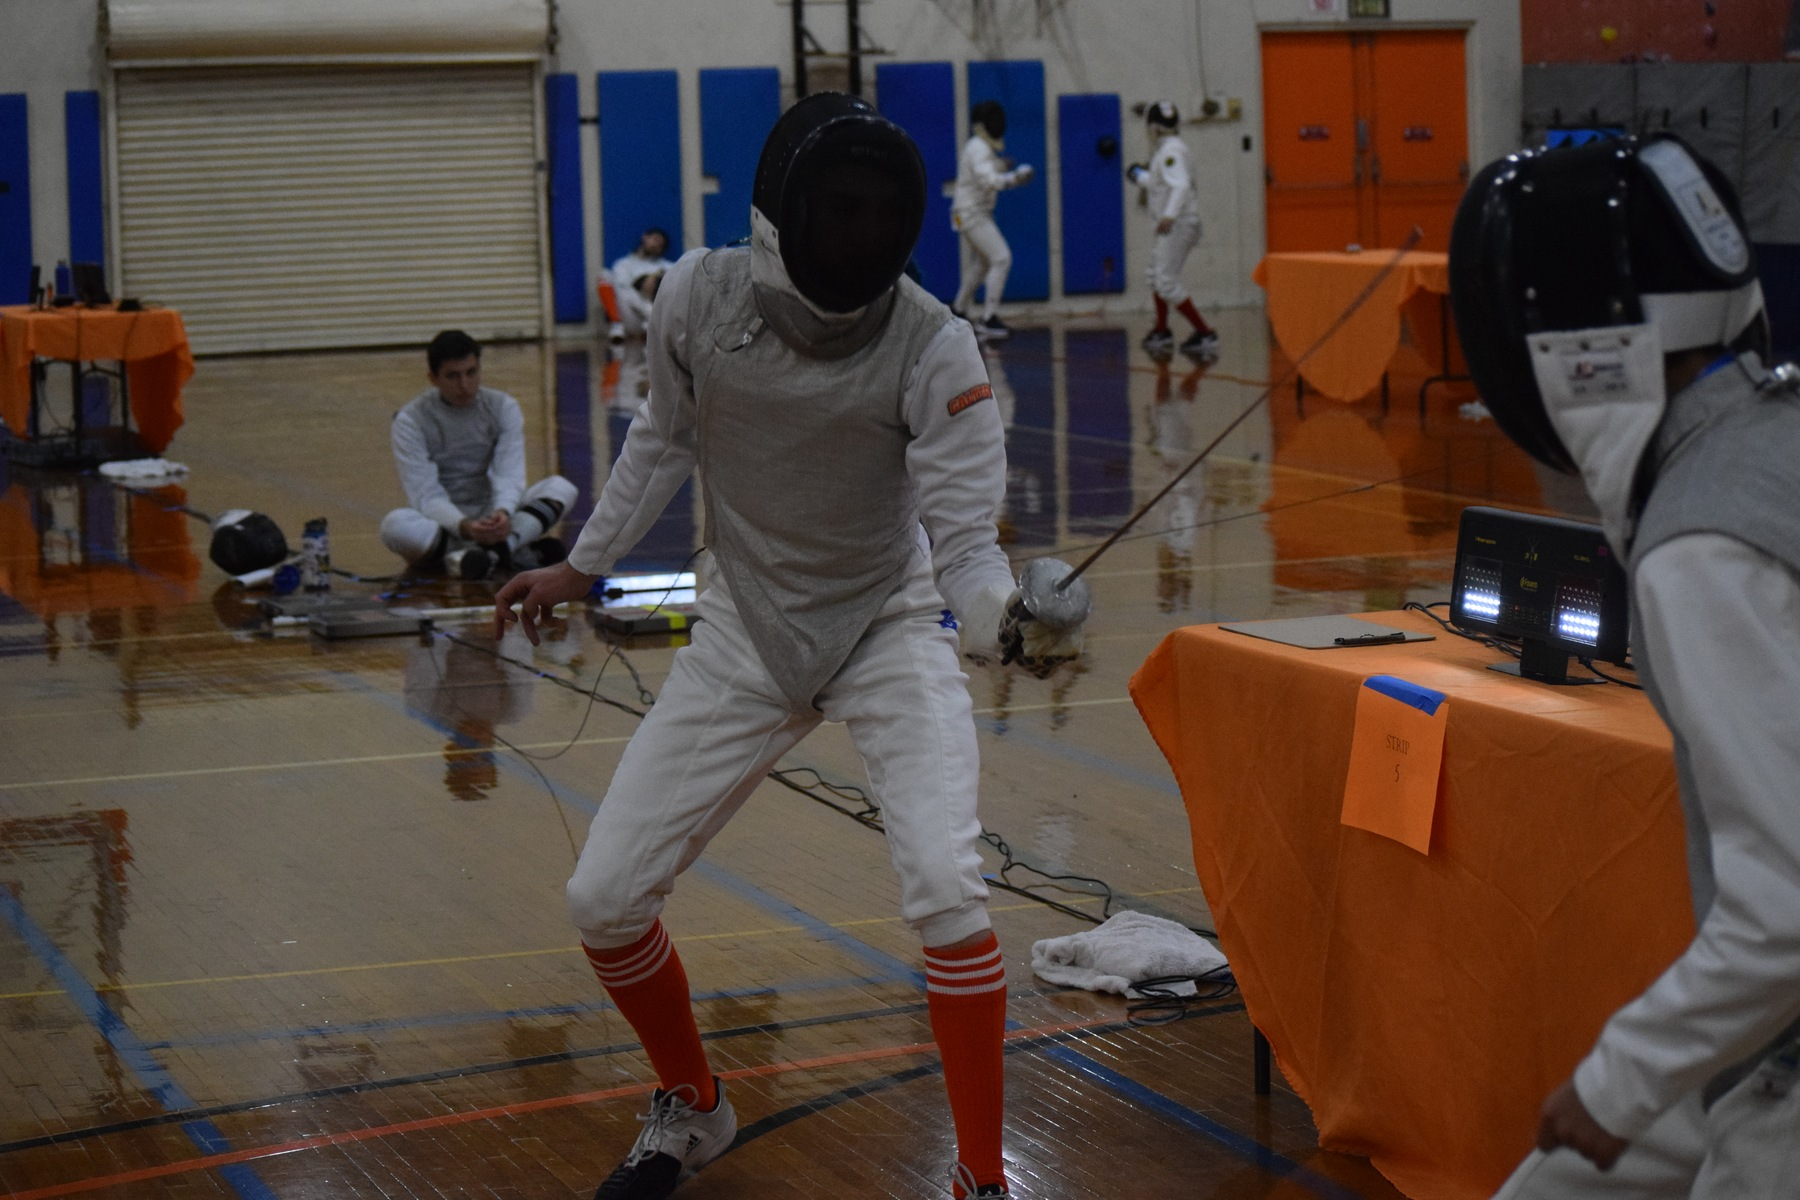 Men's Epee Bags Pair of Wins at Western Invitational